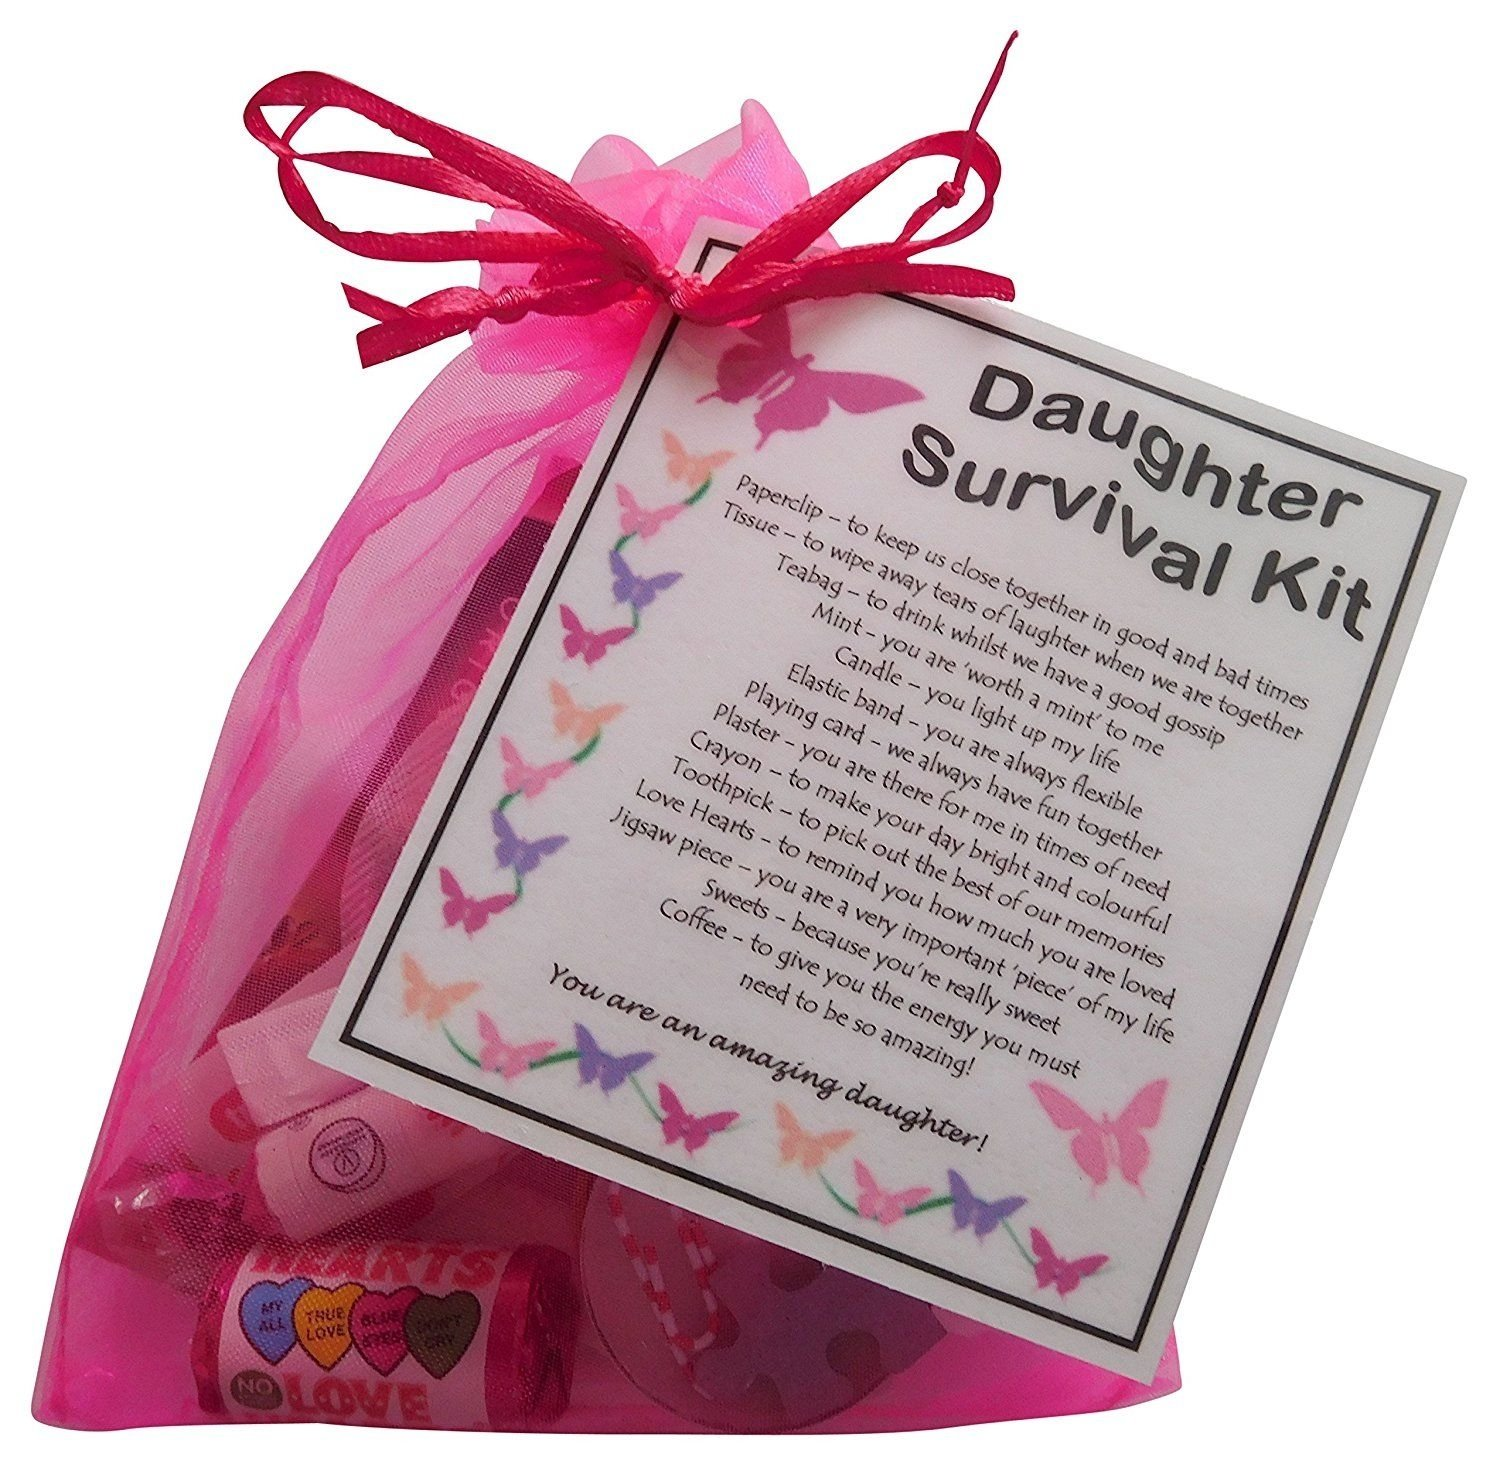 10 Stylish Birthday Gift Ideas For Daughter daughter survival kit gift great present for birthday christmas or 2020